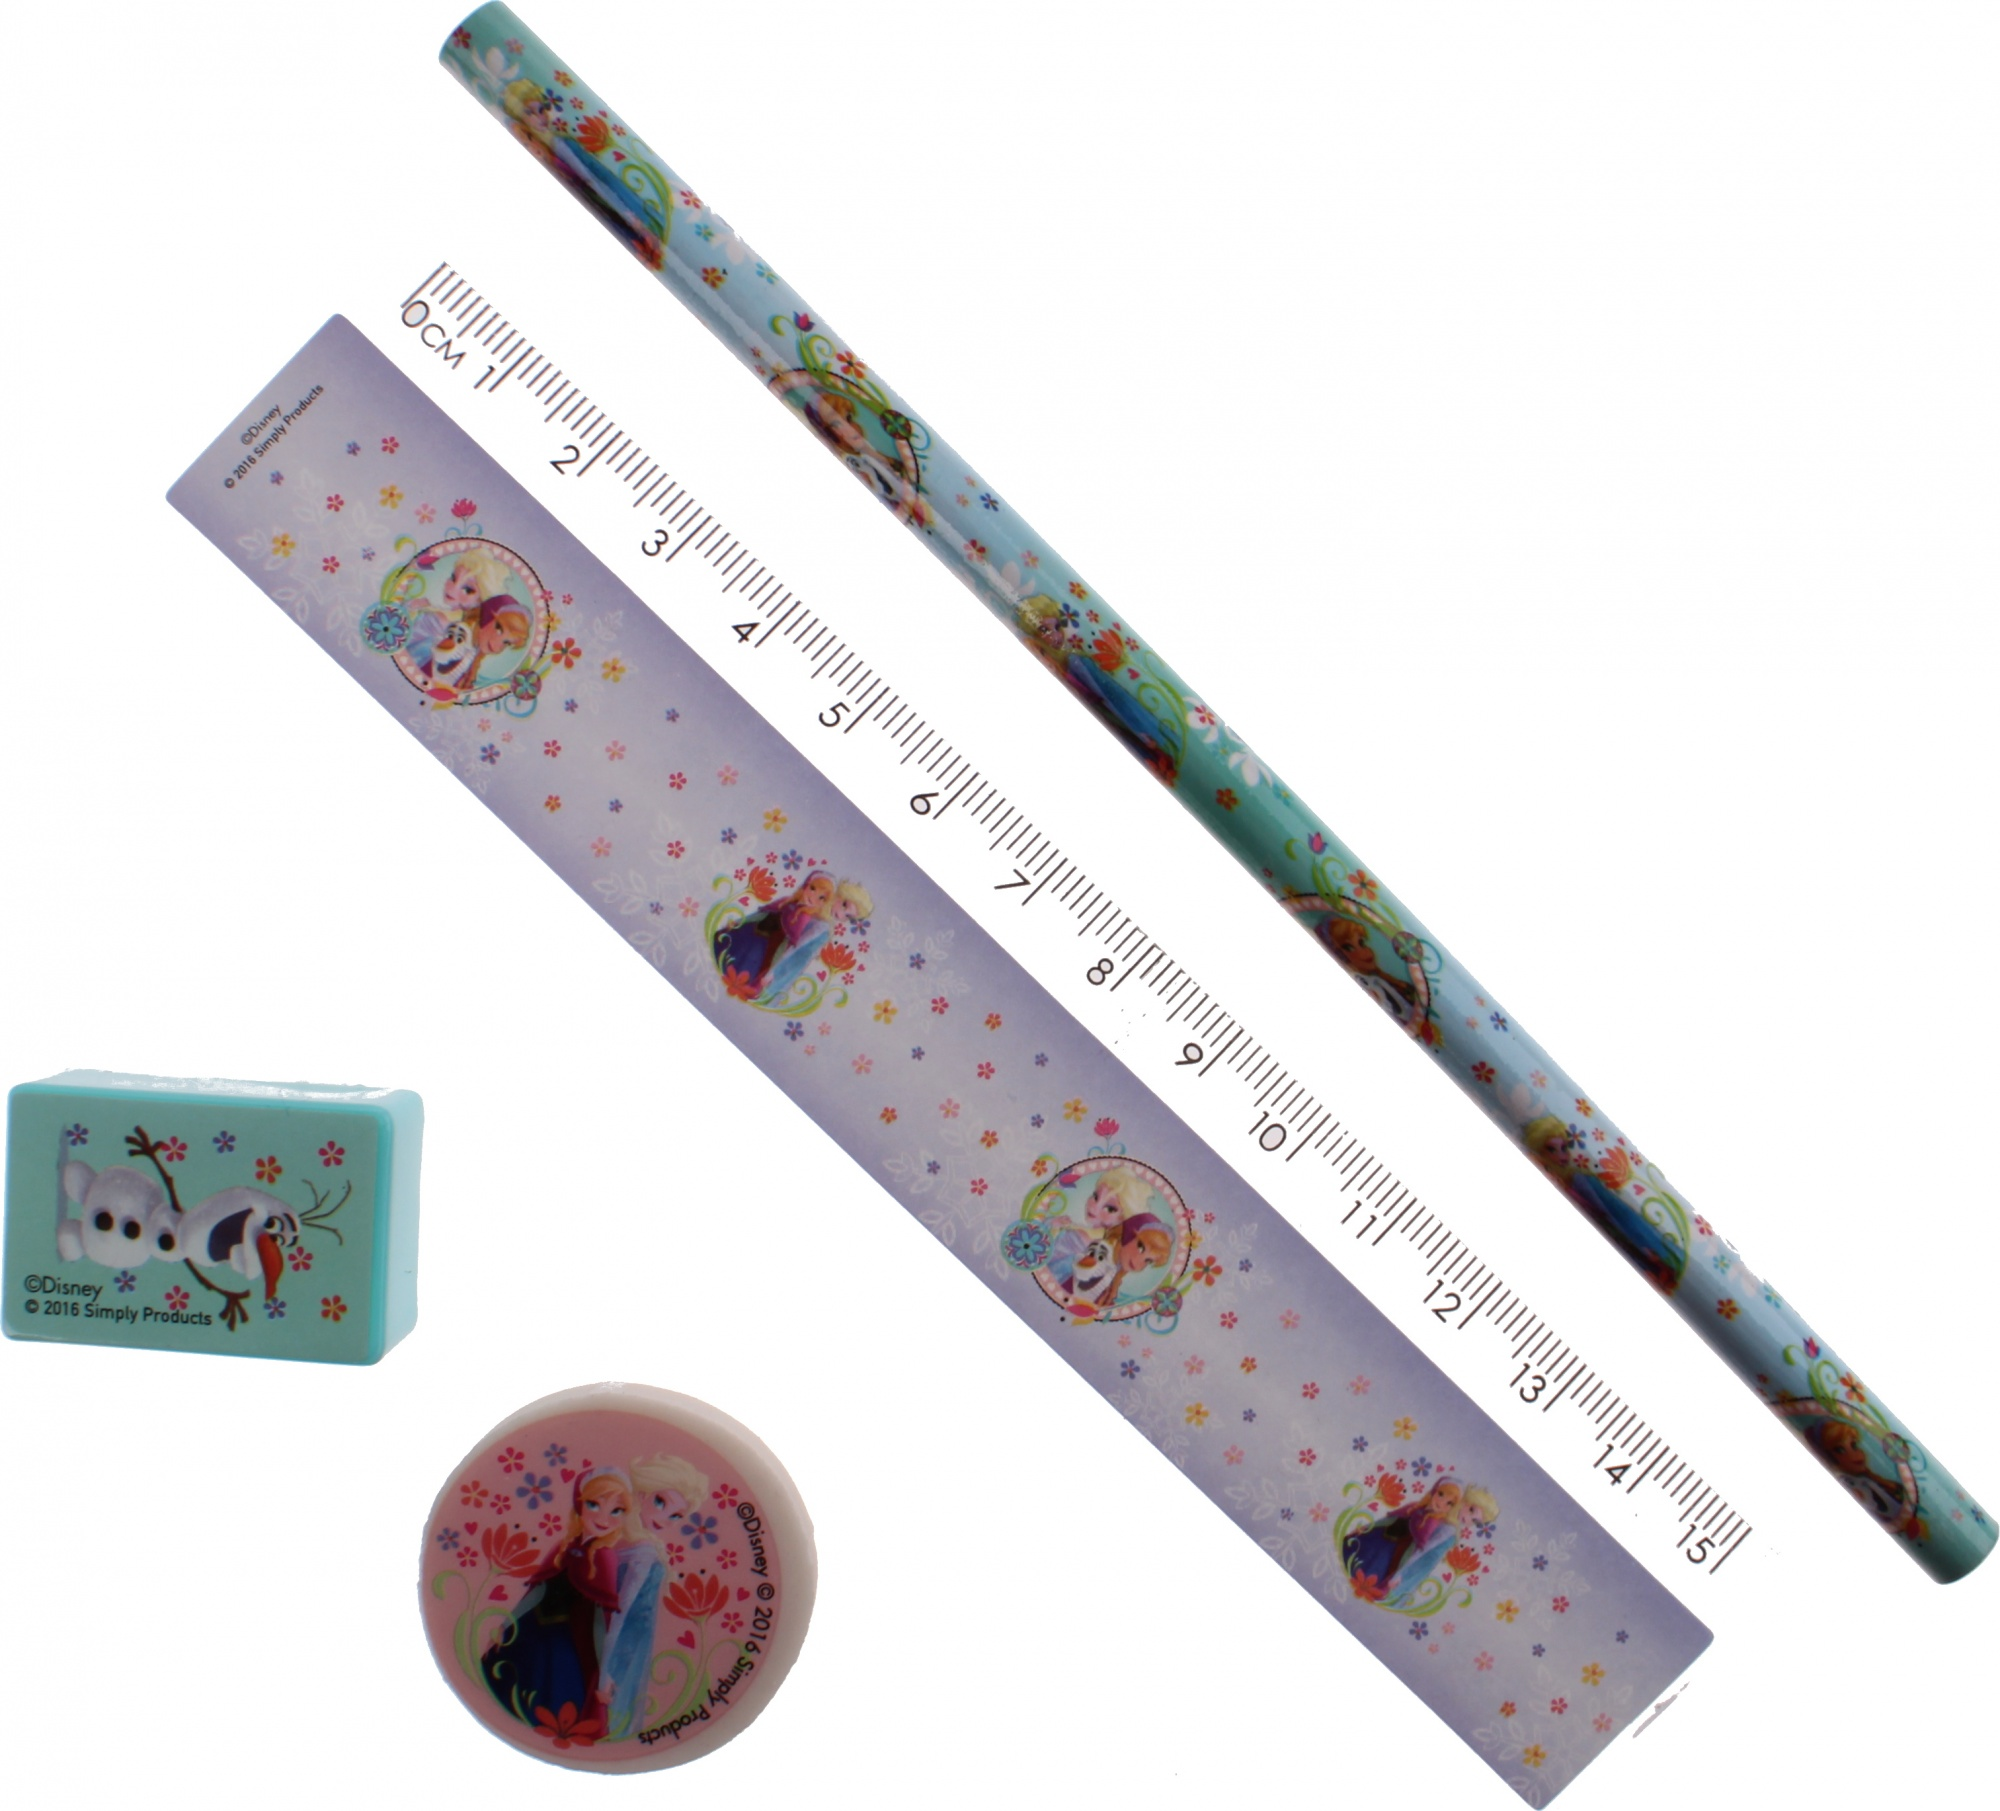 Garage Clothing Age Requirement Disney Writing Set Frozen 4 Piece Internet Toys